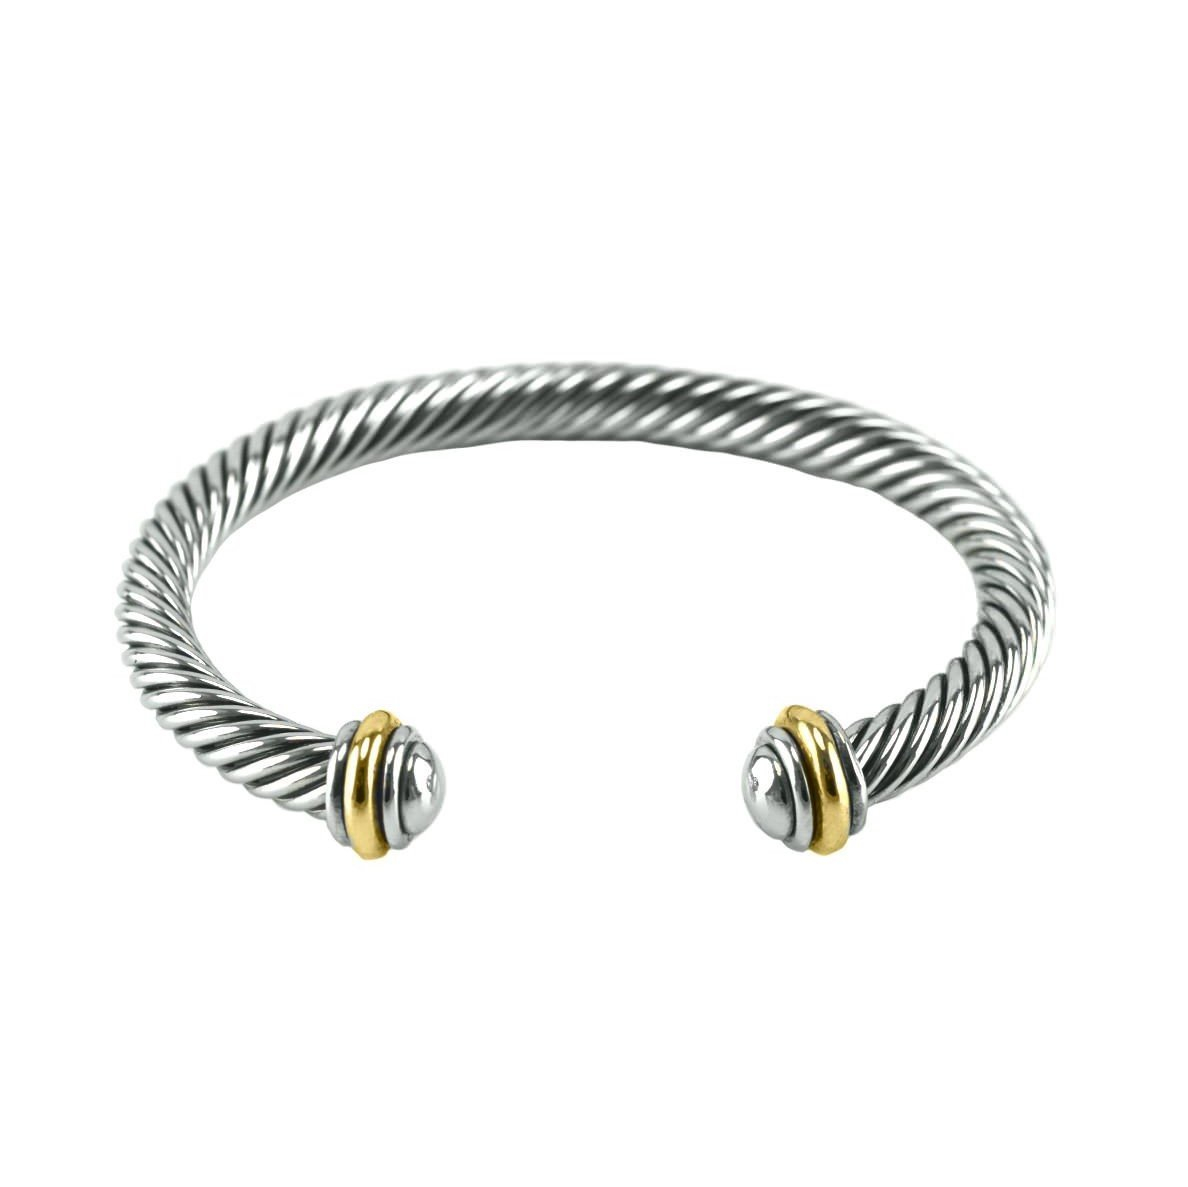 Image of Vinia Two-Tone Cable Bracelet